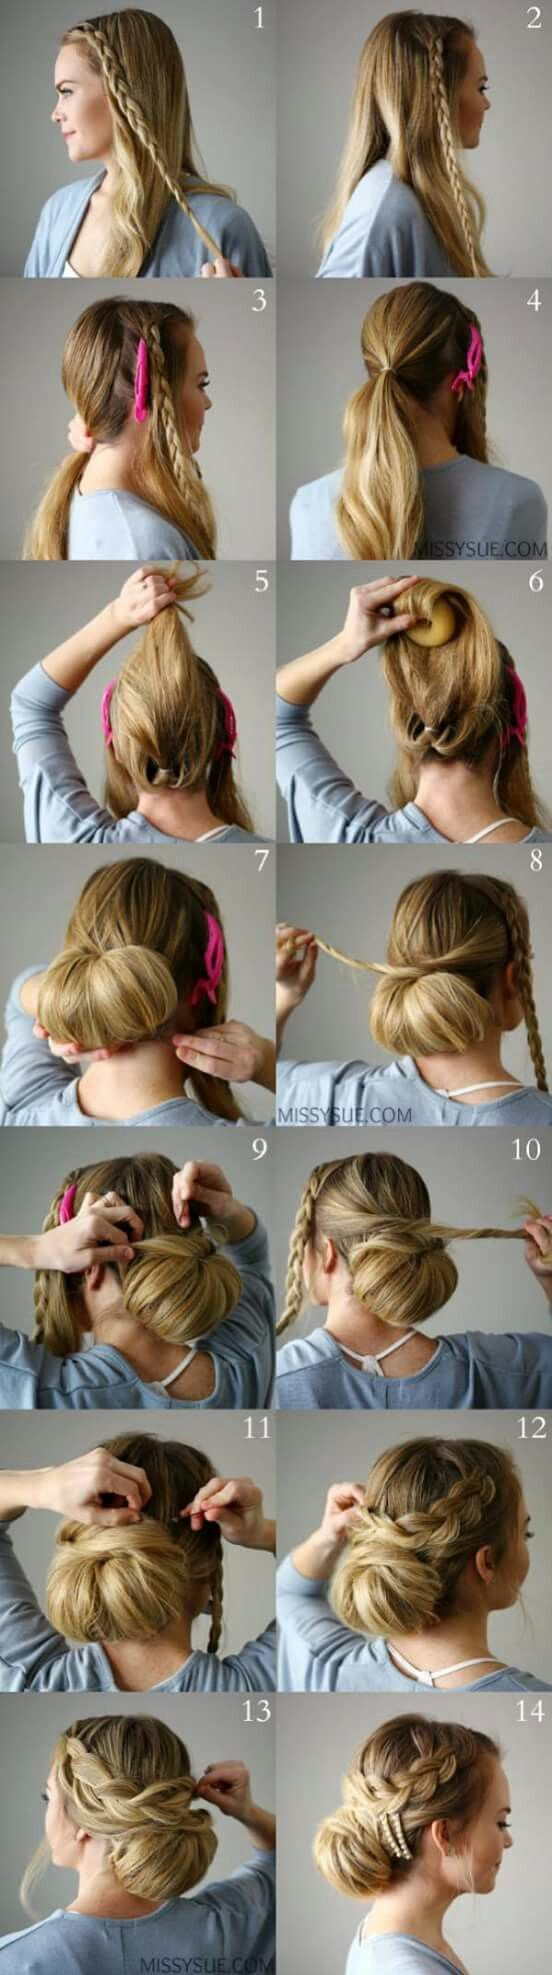 Lindo recogido my style pinterest hair style updos and makeup